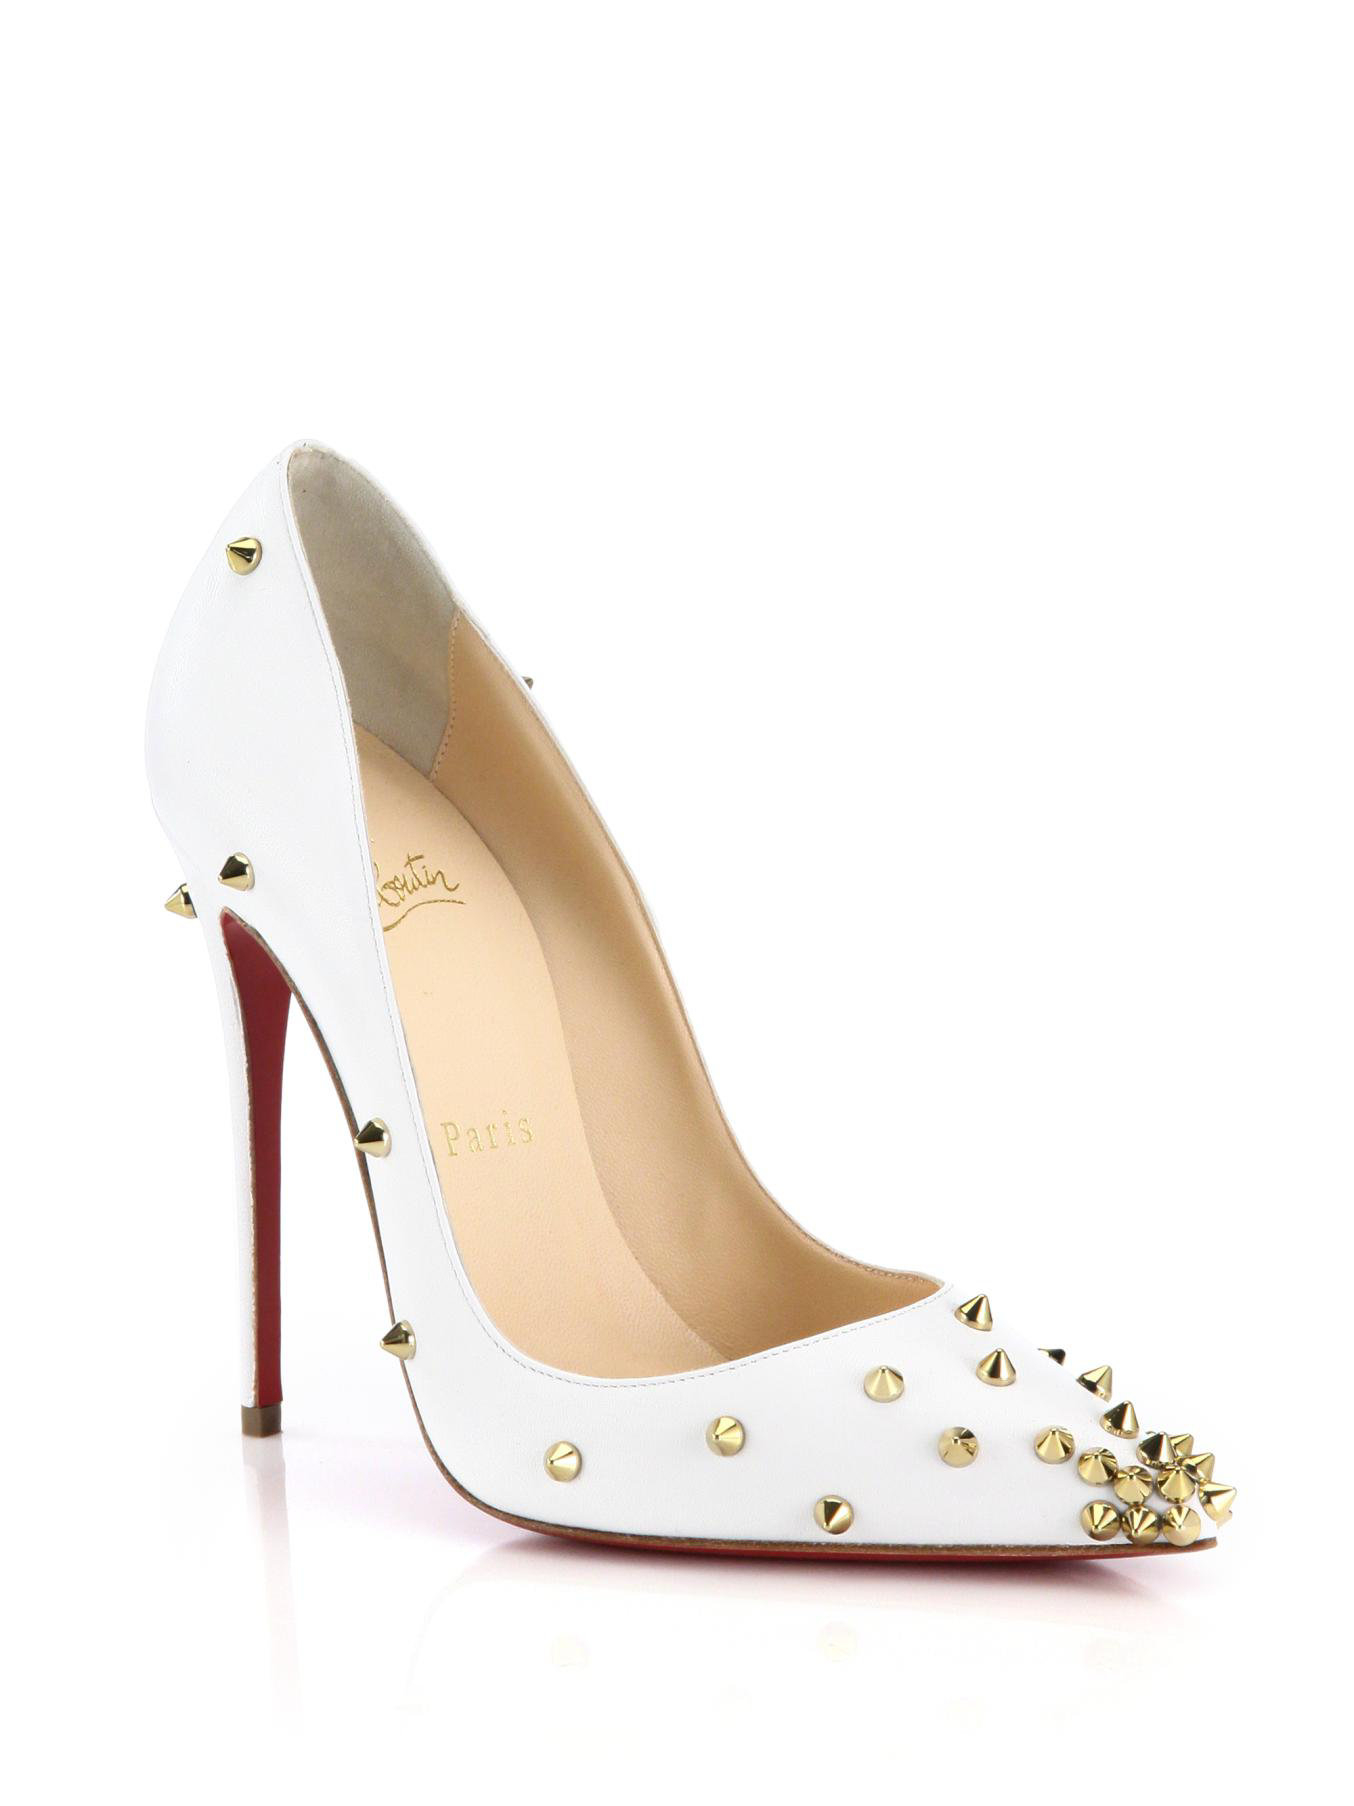 b3ae70836de2 Lyst - Christian Louboutin Degraspike Studded Leather Pumps in White